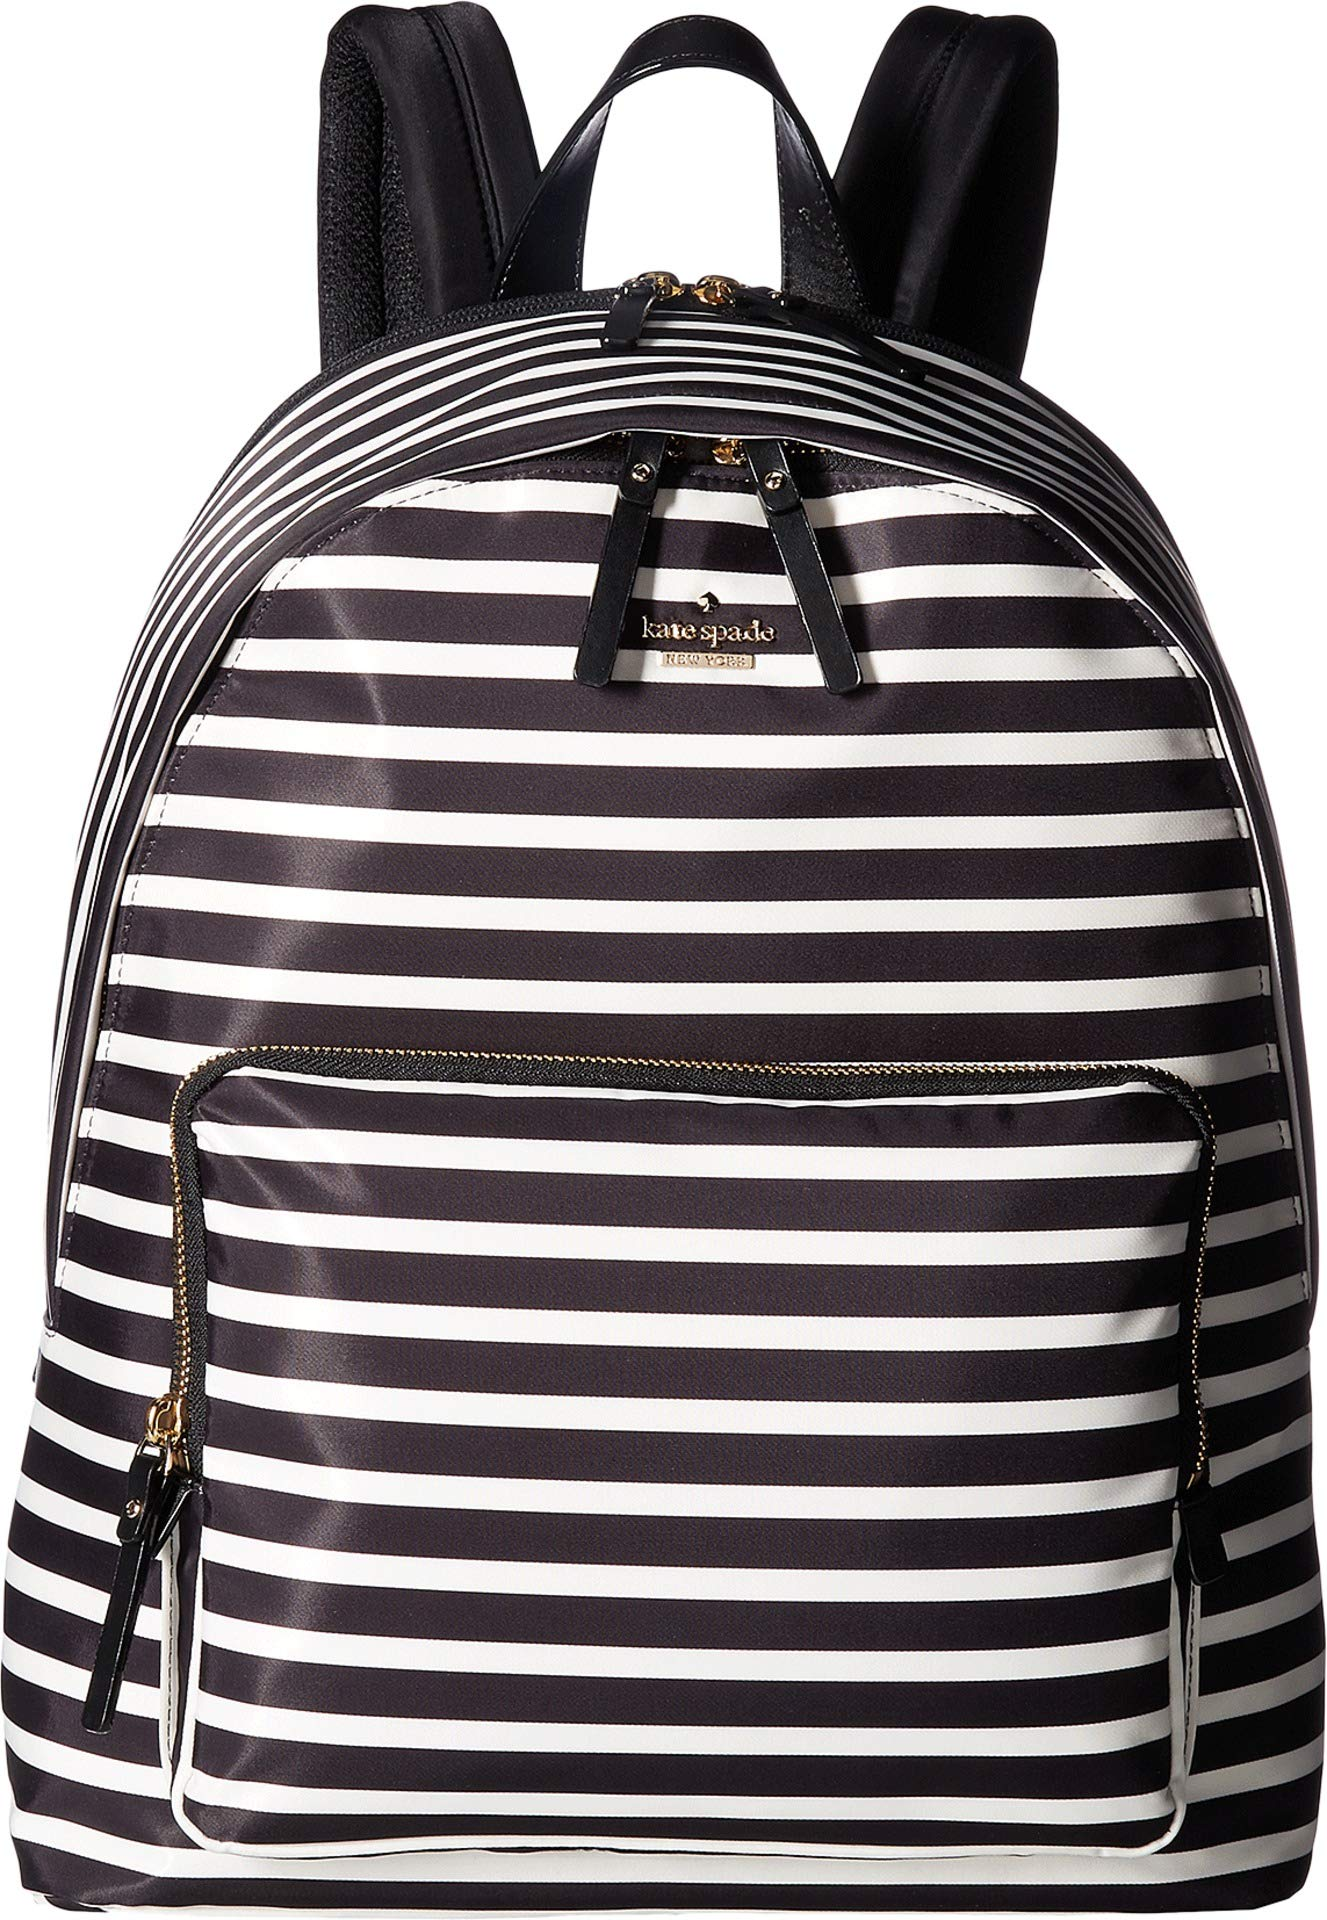 Kate Spade New York Women's 15 Inch Nylon Tech Backpack Black/Clotted Cream 1 One Size